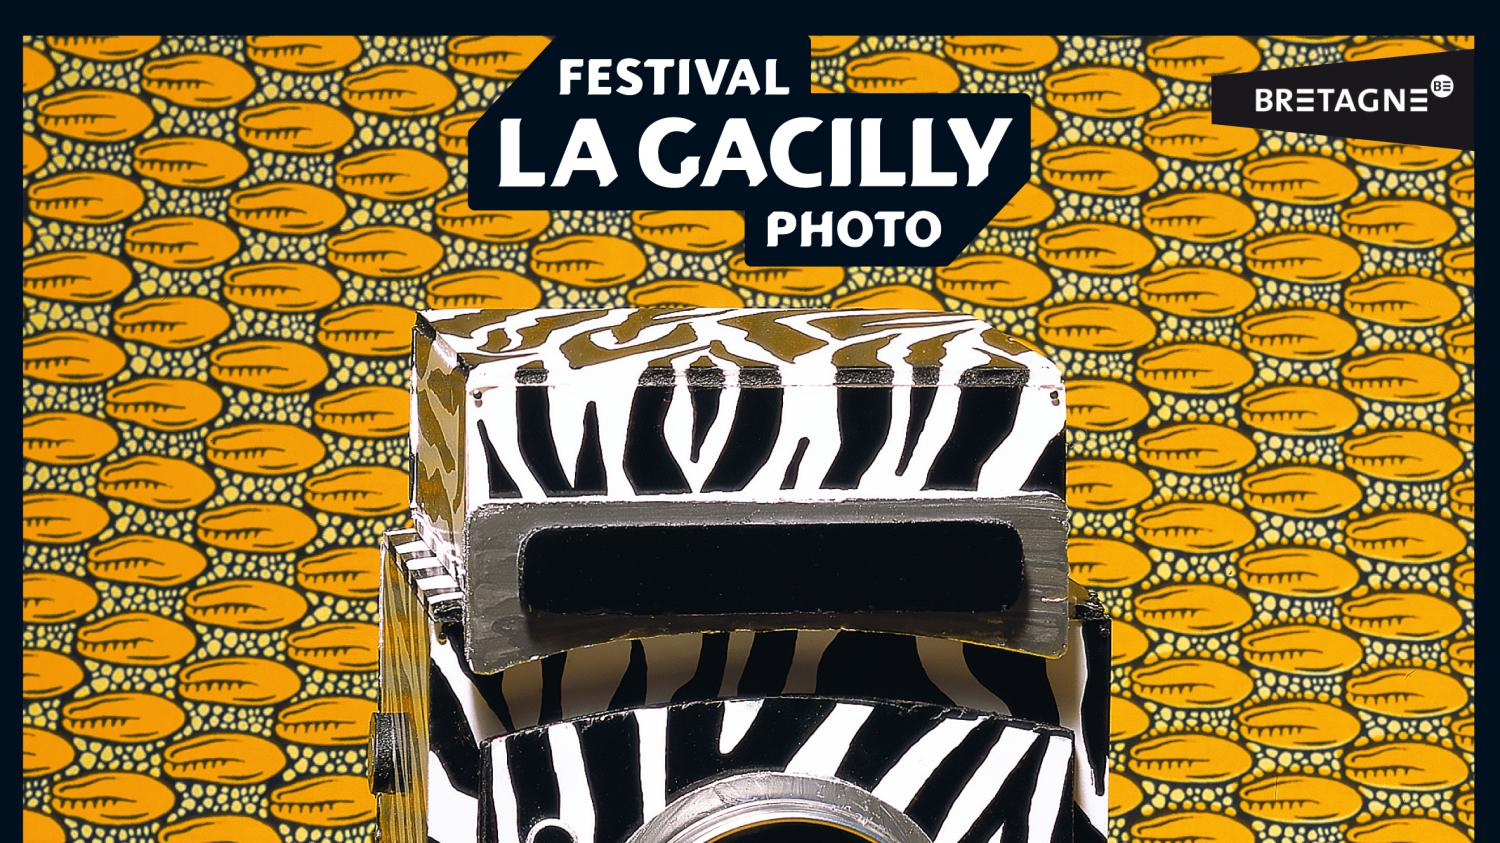 V nement le festival photo la gacilly jusqu 39 au 30 septembre 2017 en bretagne - Festival photo la gacilly ...